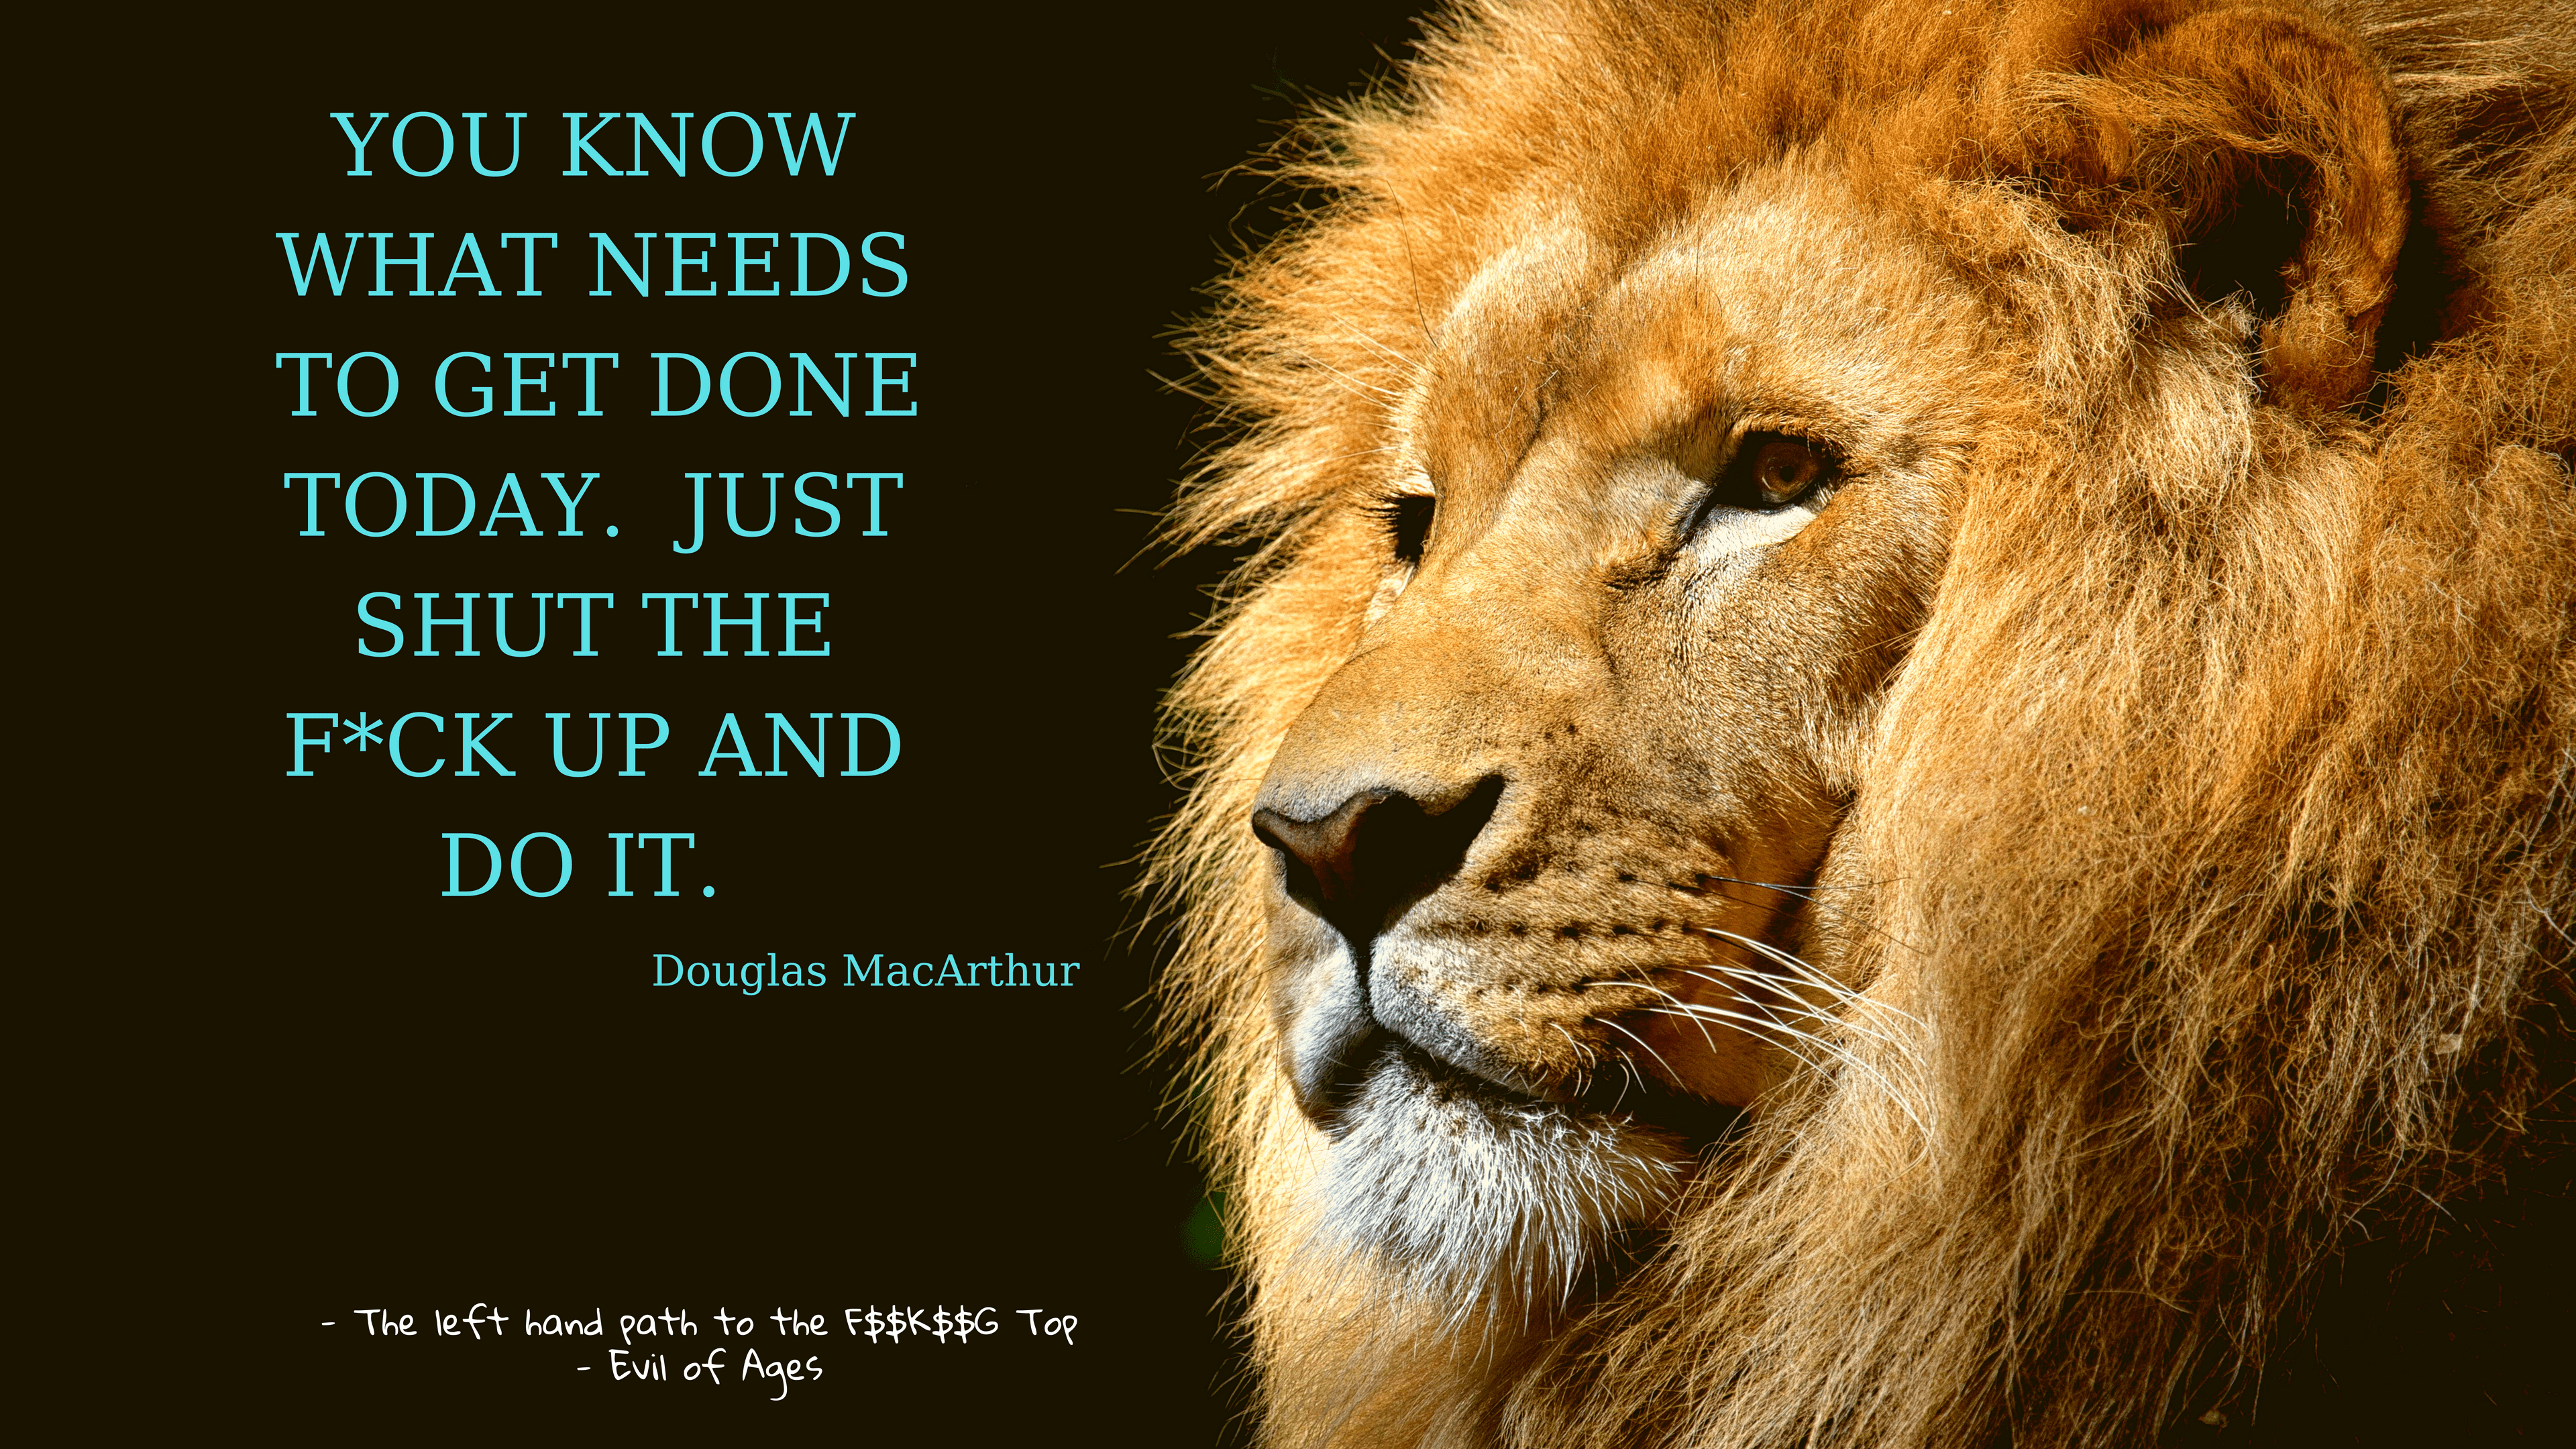 'You know what needs to be get done today.' – Douglas MacArthur [3840 x 2160]